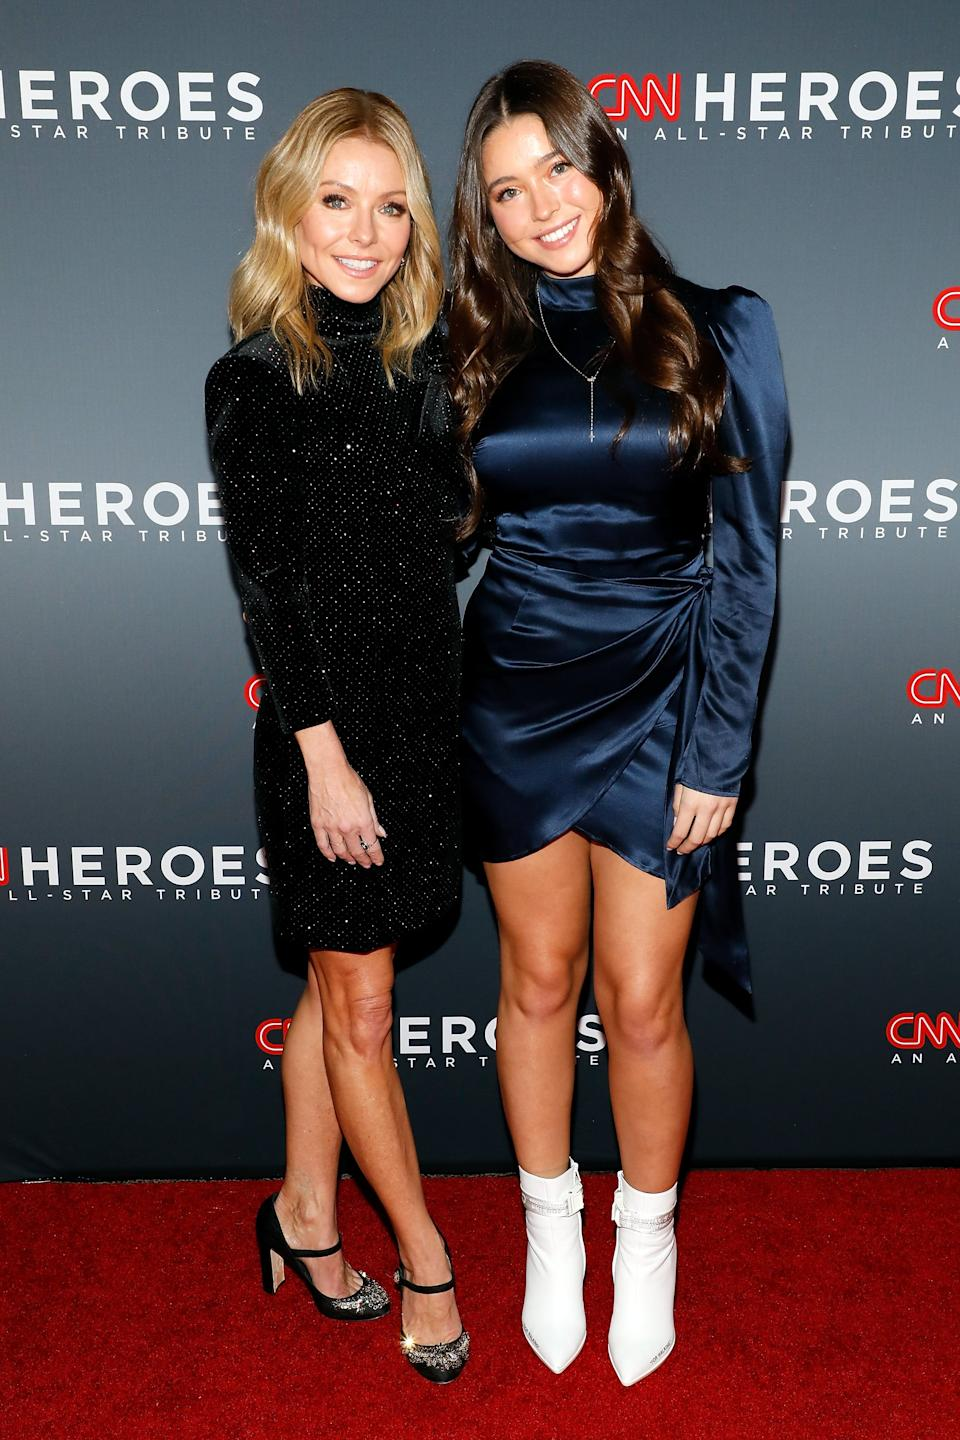 NEW YORK, NEW YORK - DECEMBER 08: Kelly Ripa and Lola Consuelos attend the 13th Annual CNN Heroes Gala at American Museum of Natural History on December 08, 2019 in New York City. (Photo by Taylor Hill/WireImage)